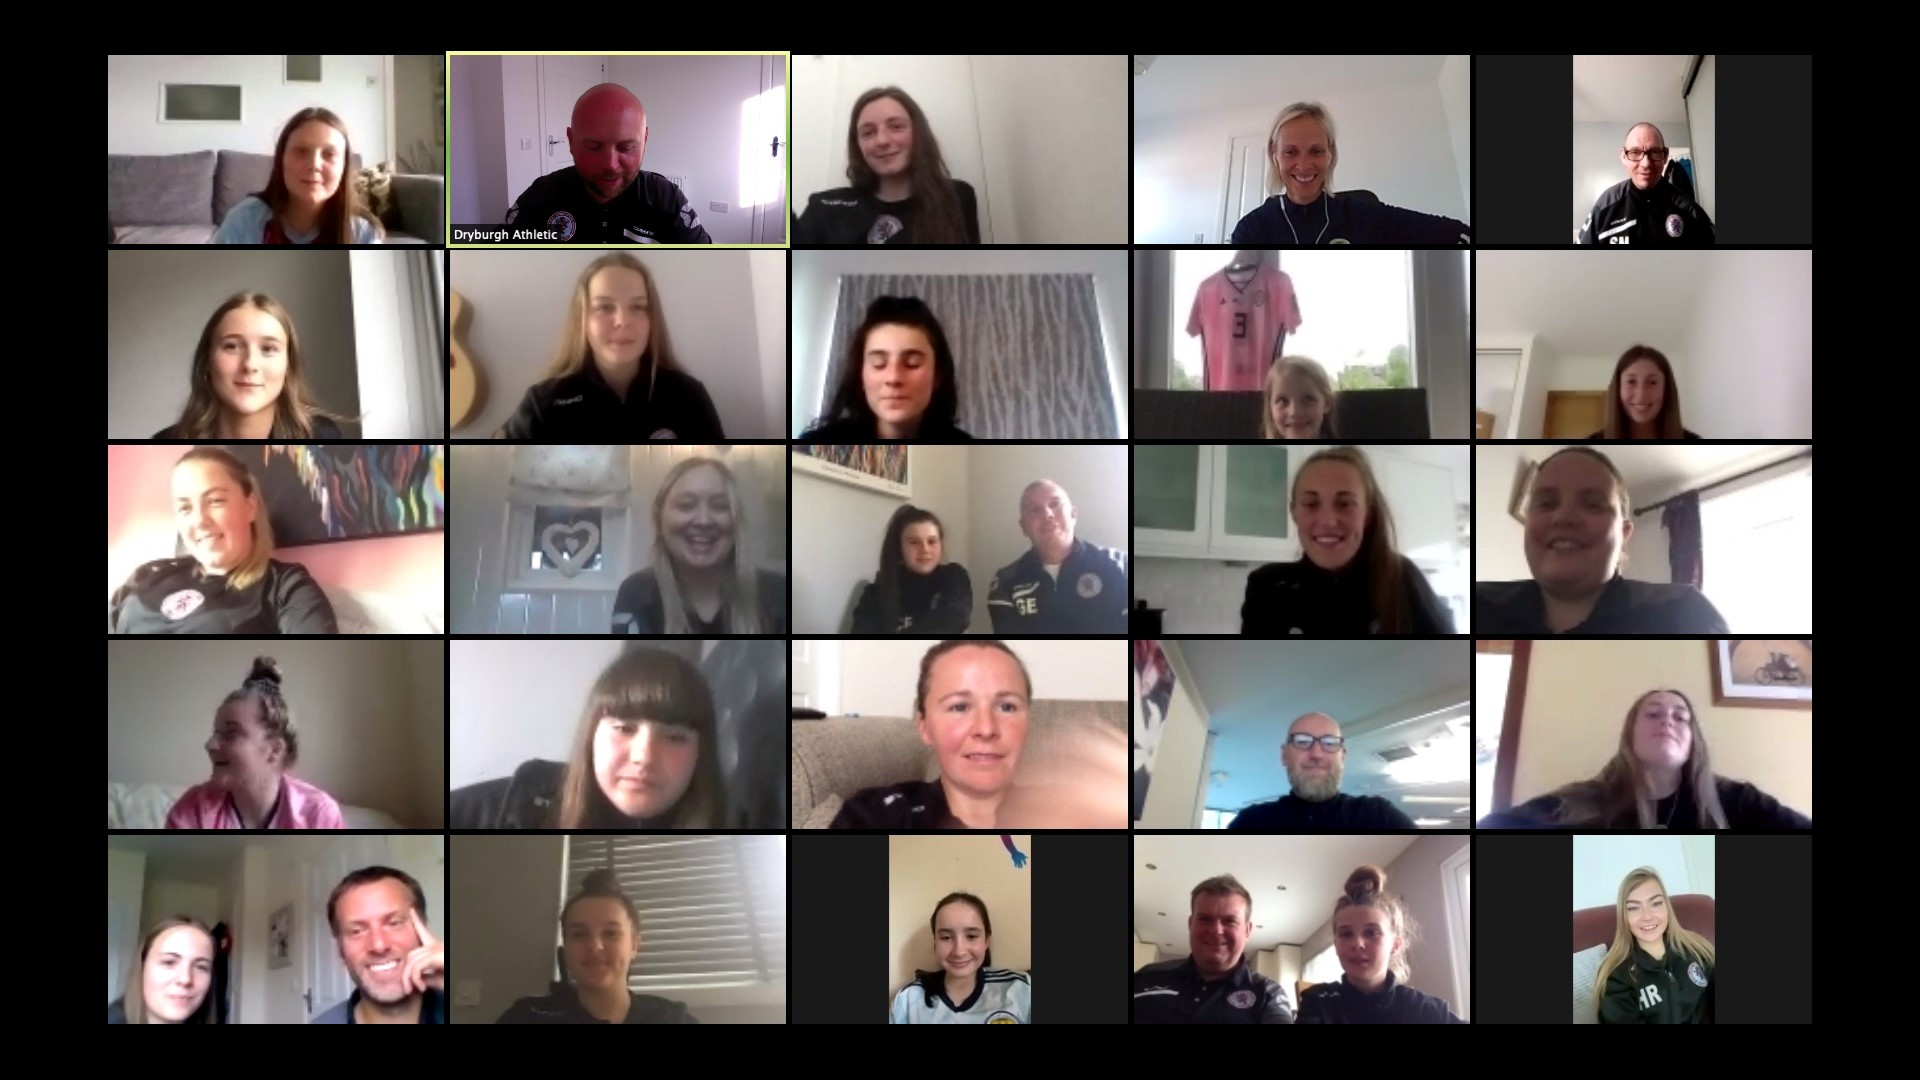 A screengrab of the online Q&A session.